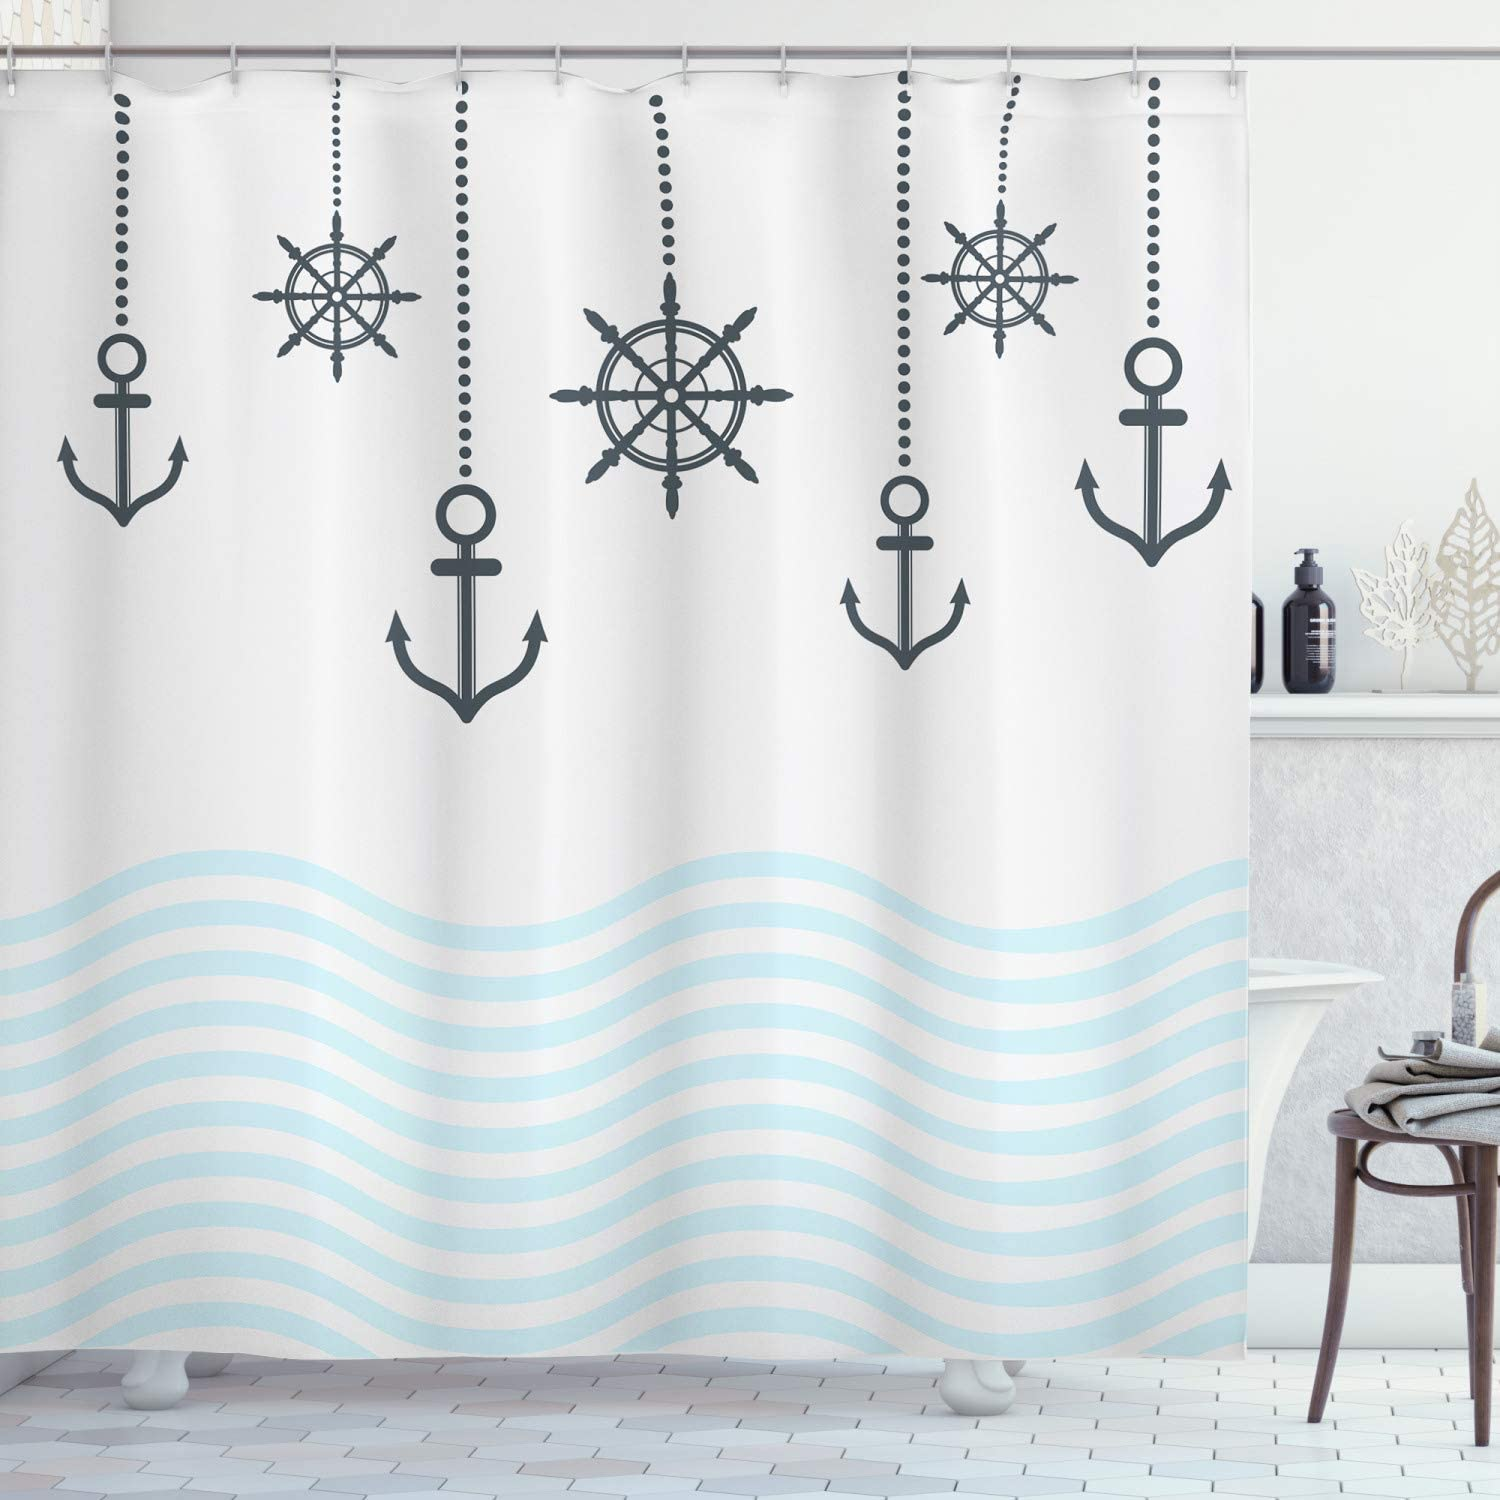 Ambesonne Anchor Shower Curtain, Hanging Nautical Steering Wheel and Anchors Abstract Ocean Waves, Cloth Fabric Bathroom Decor Set with Hooks, 70